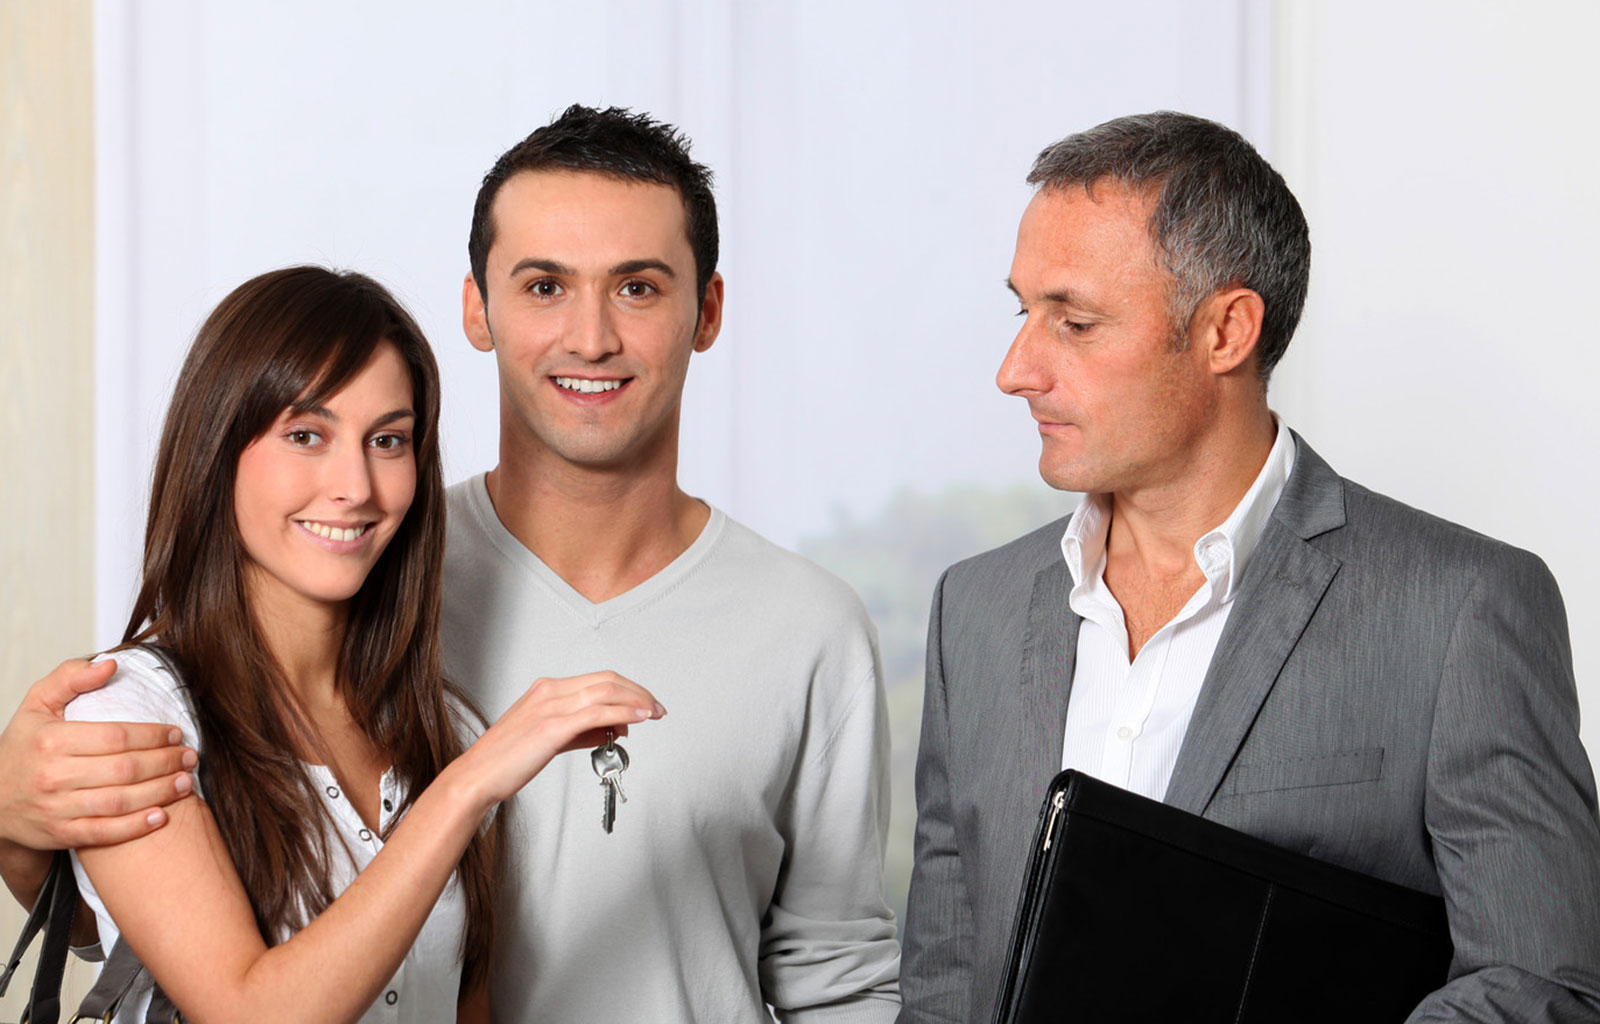 Buying a home? Here's why it pays to get pre-approved.